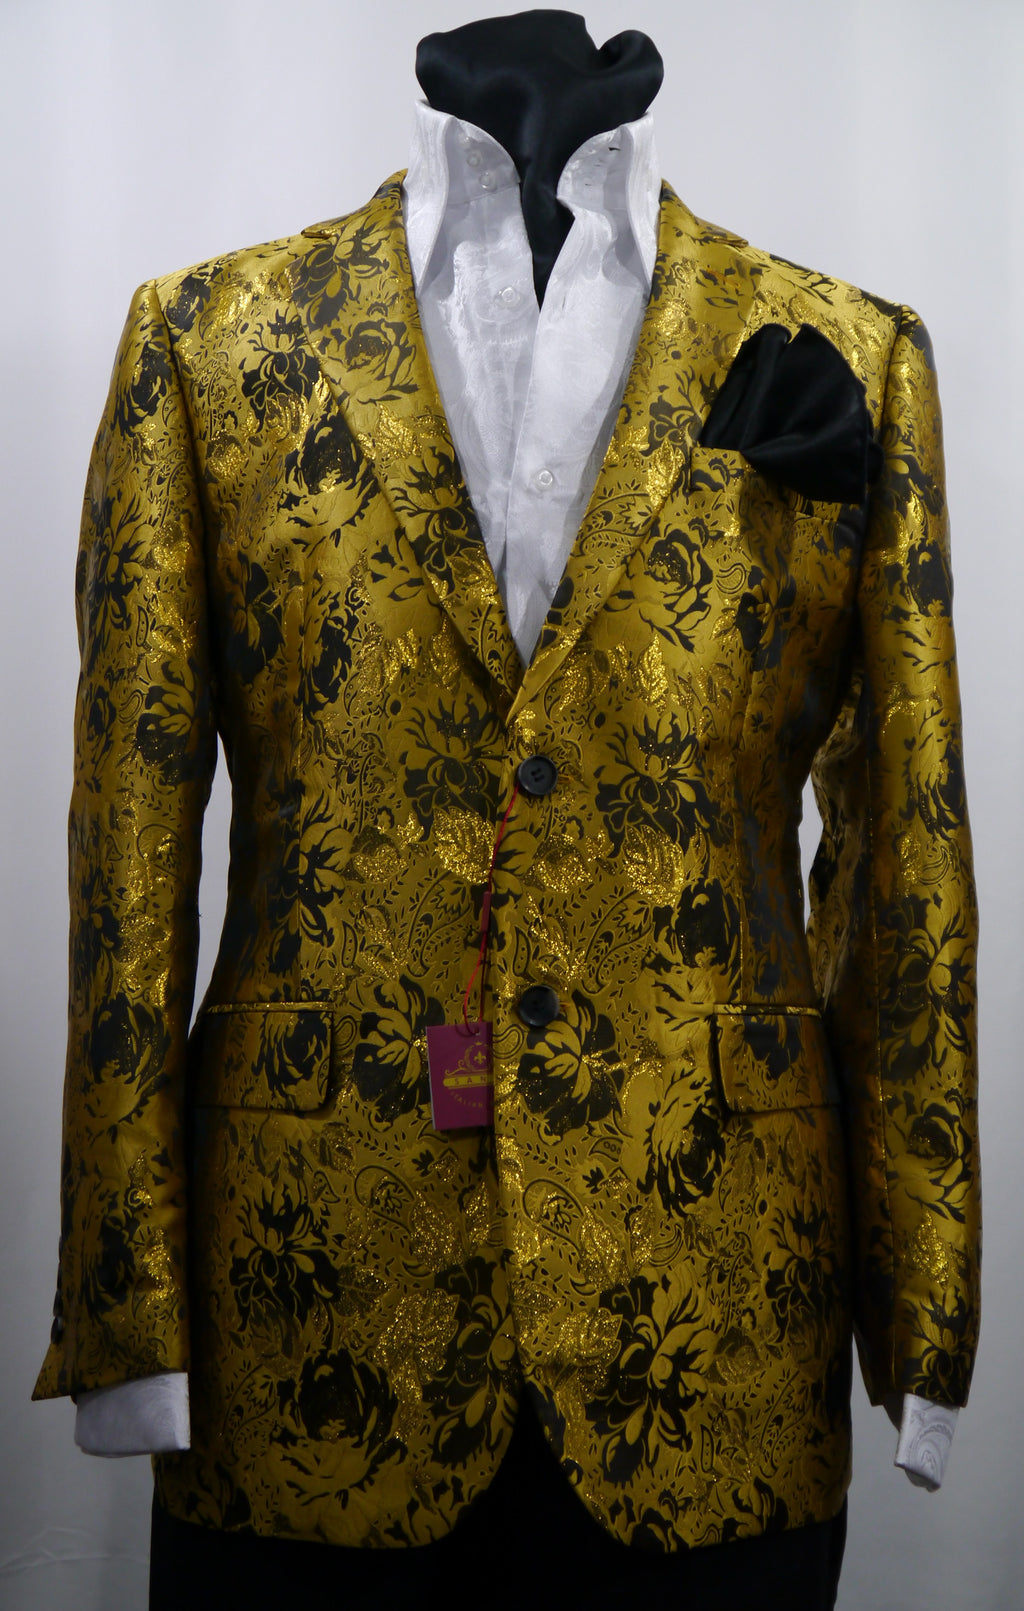 Mens Gold Shiny Metallic Foil Floral Jacket Blazer SANGI MILAN COLLECTION J1036 S